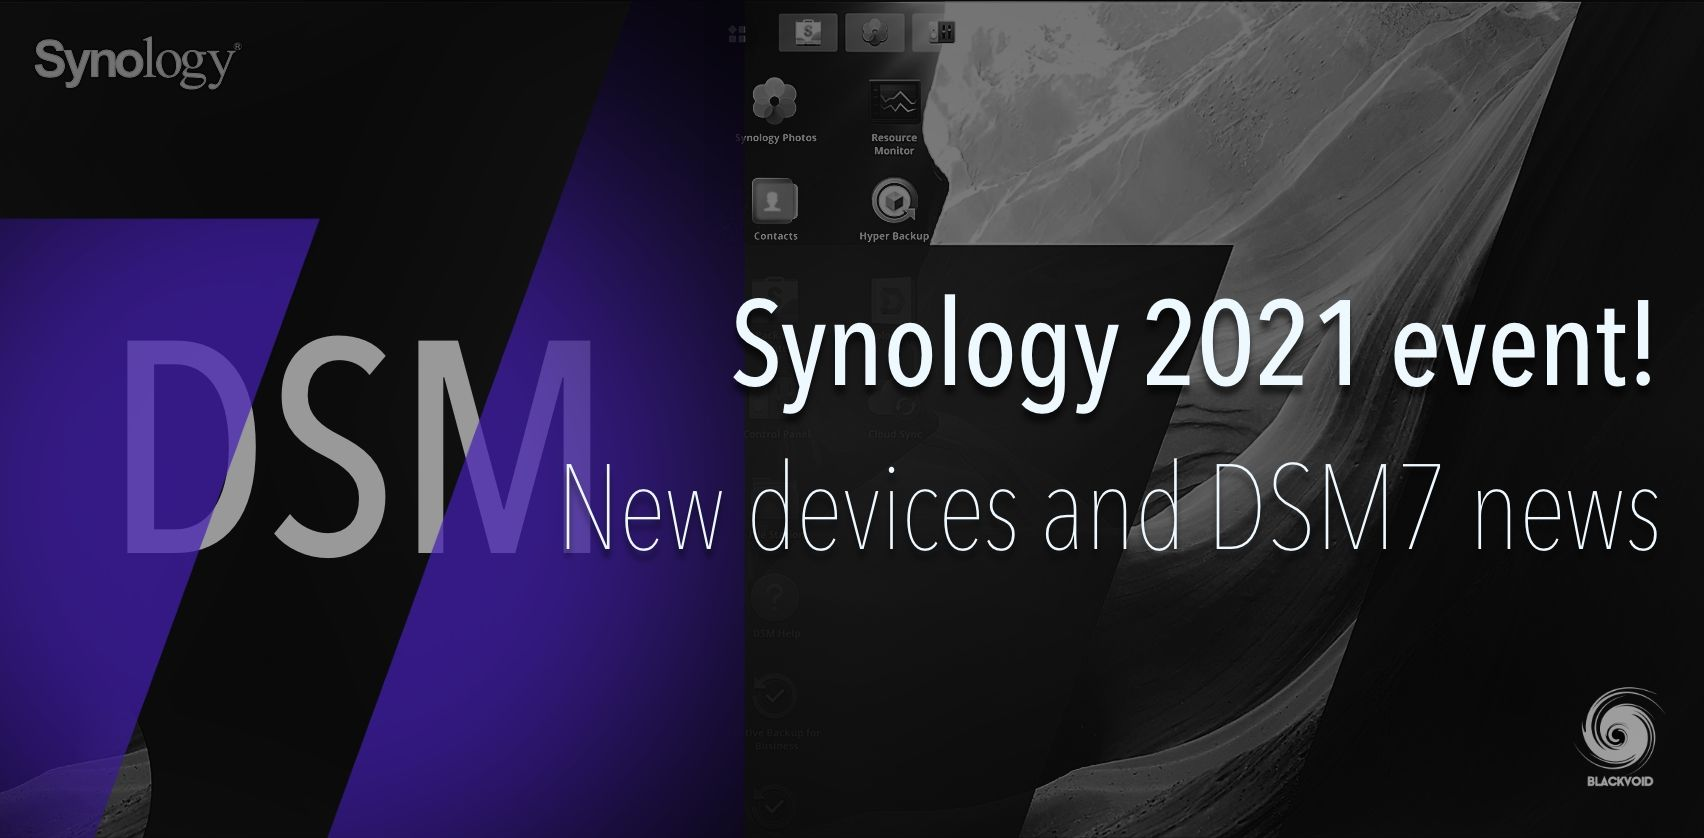 Synology 2021 event!